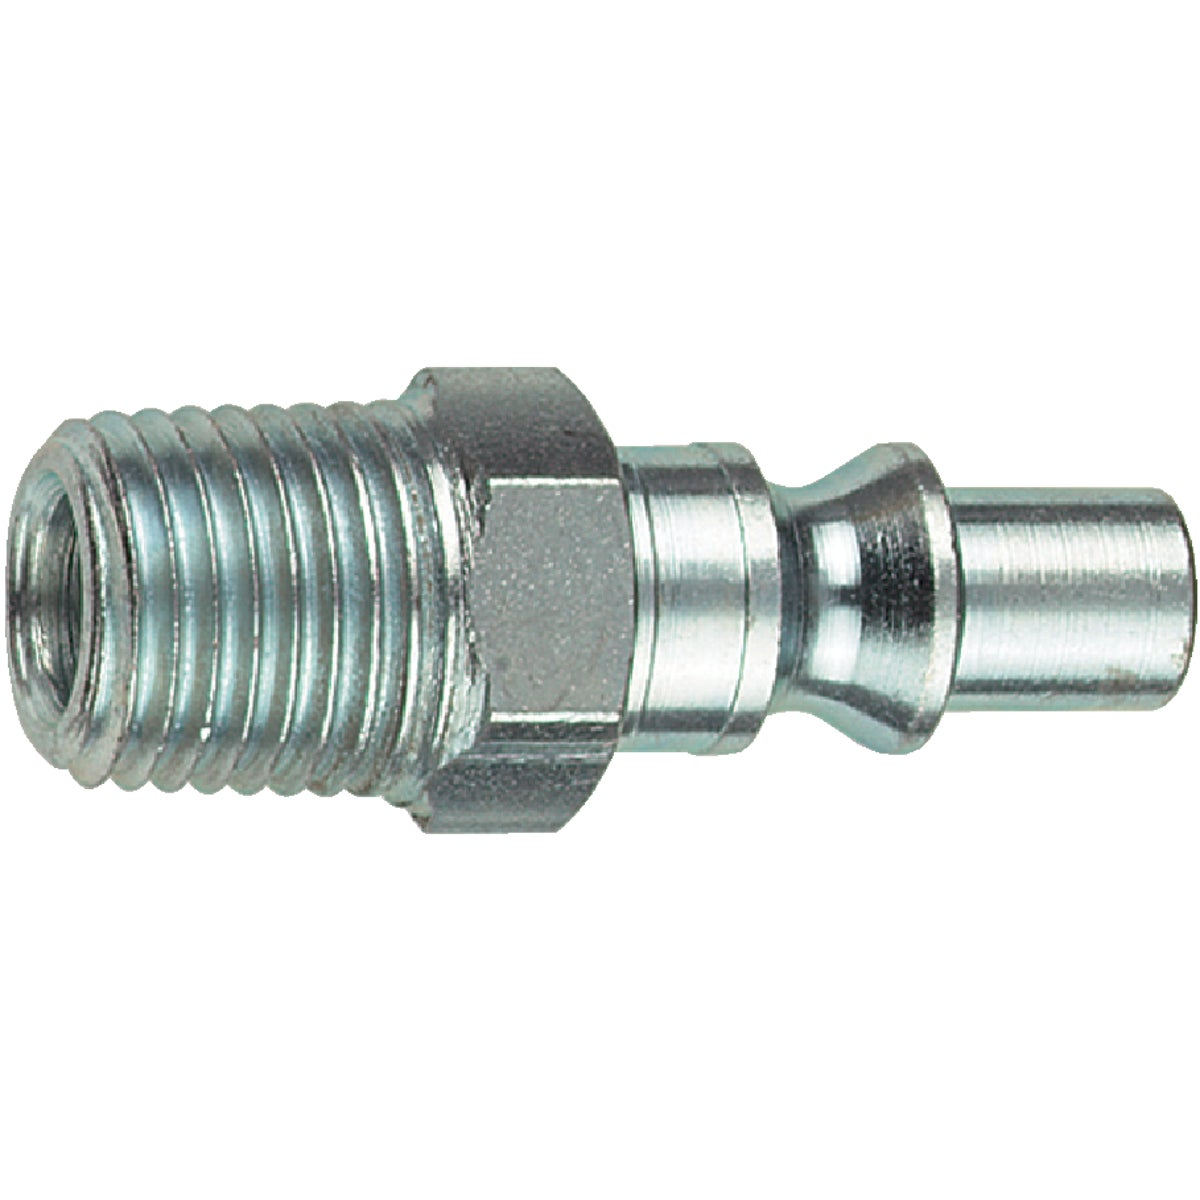 "1/4"" ARO MALE PLUG - 12-325 by Plews  Lubrimatic"